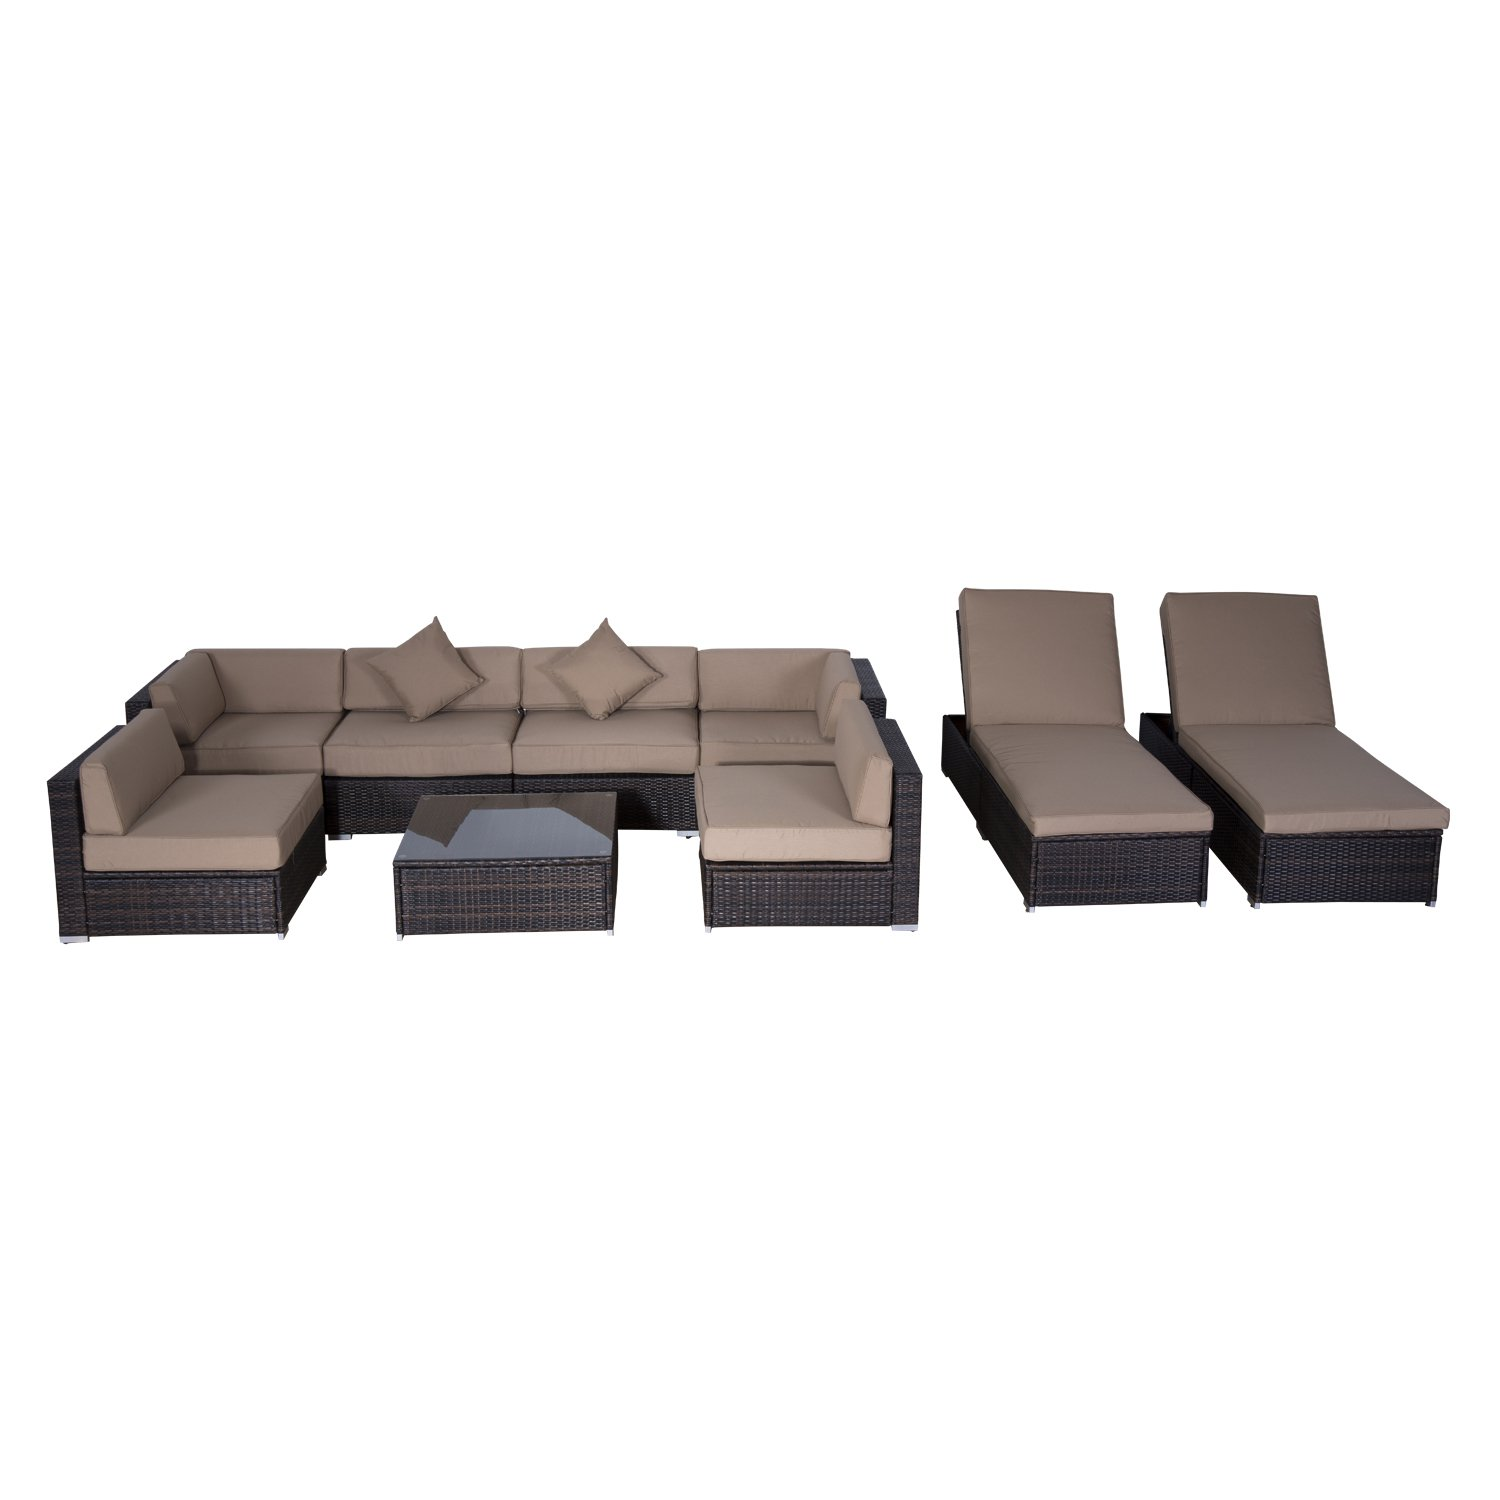 Outsunny 9 pc Outdoor Patio Rattan Wicker Sofa Sectional & Chaise Lounge Furniture Set - Desert Sand